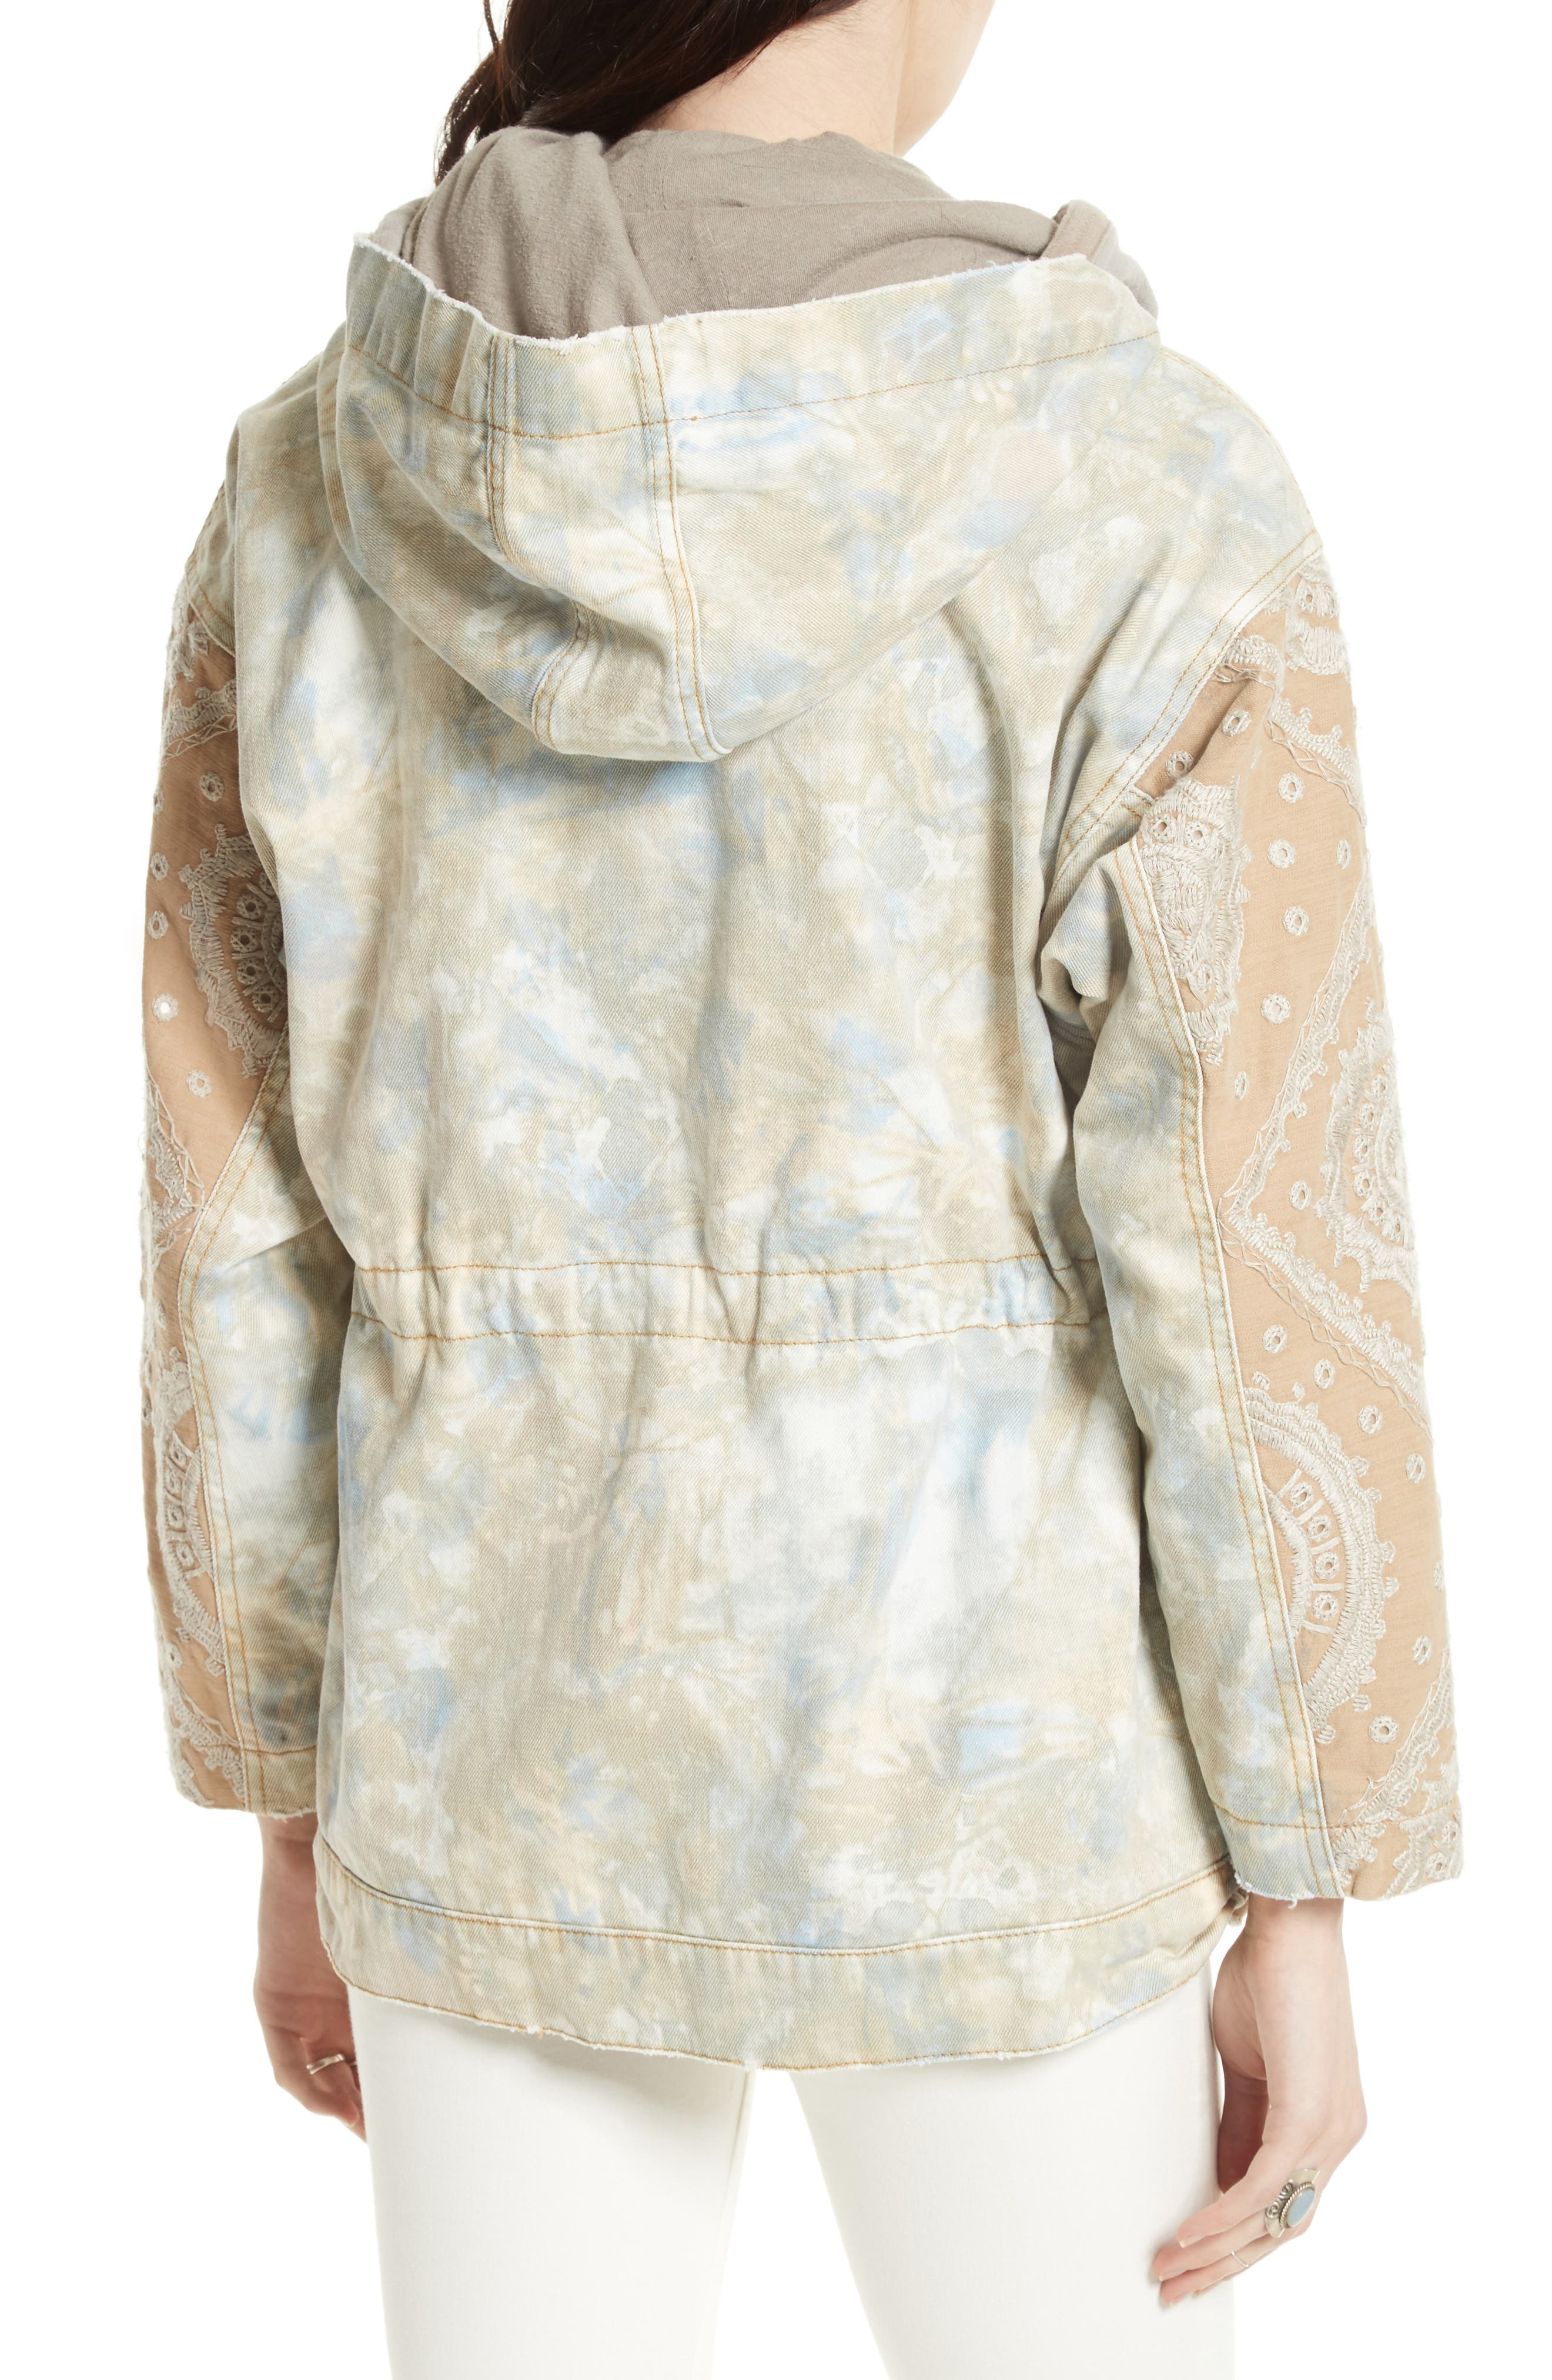 FREE PEOPLE,                             Layered Parka,                             Alternate thumbnail 2, color,                             250